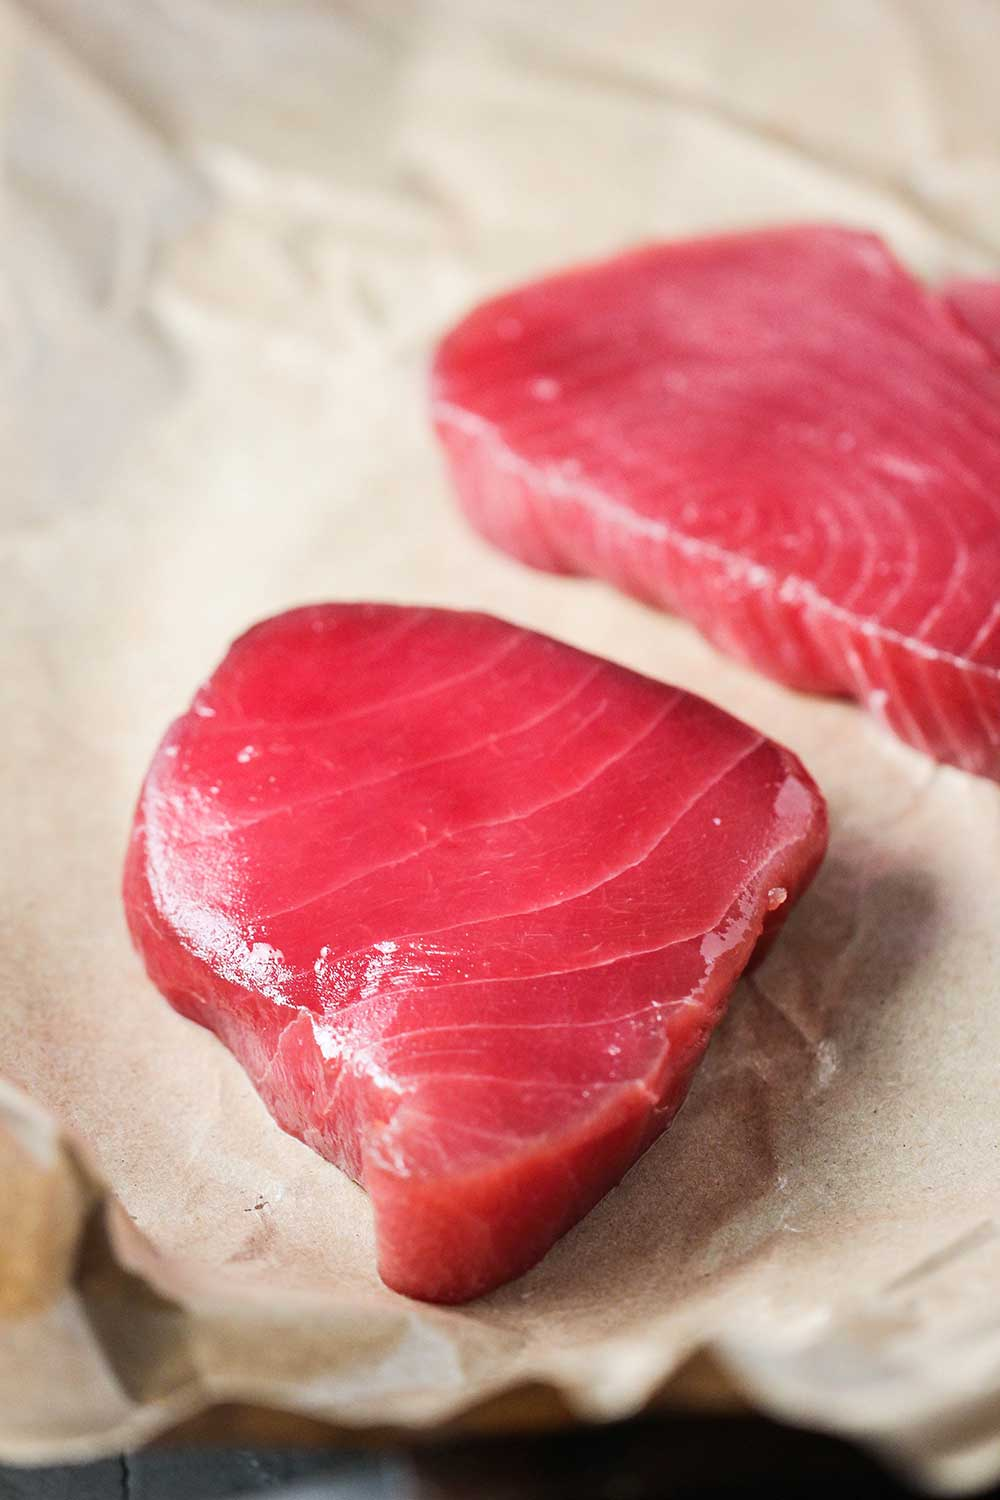 Two vibrant raw tuna steaks on butcher's paper.